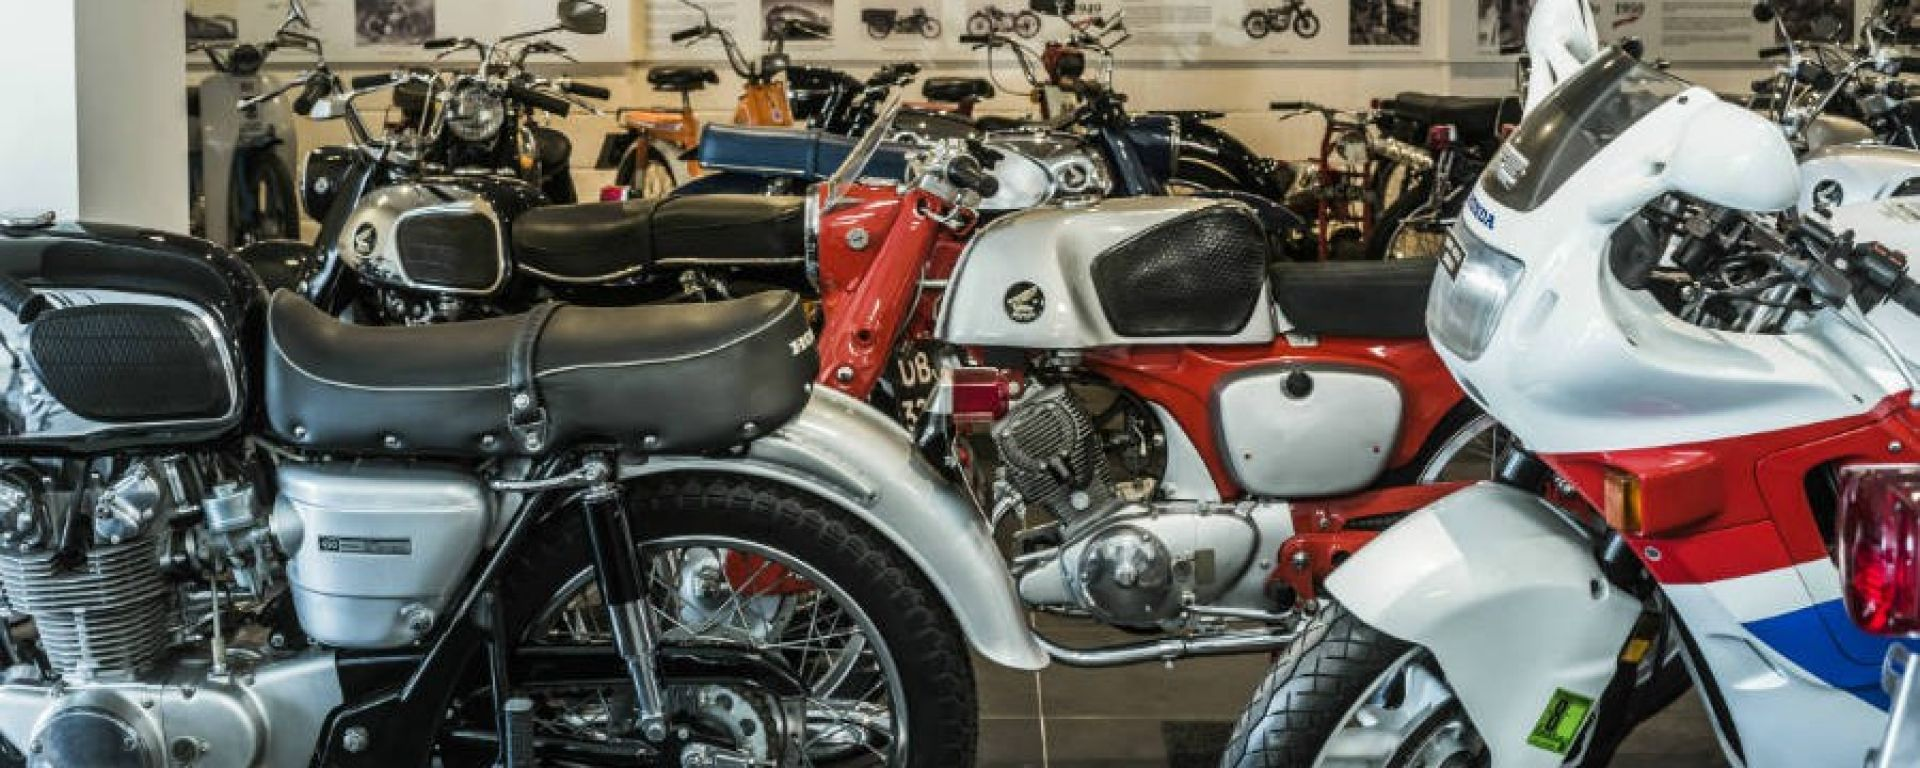 David Silver Collection: un museo con 150 moto Honda